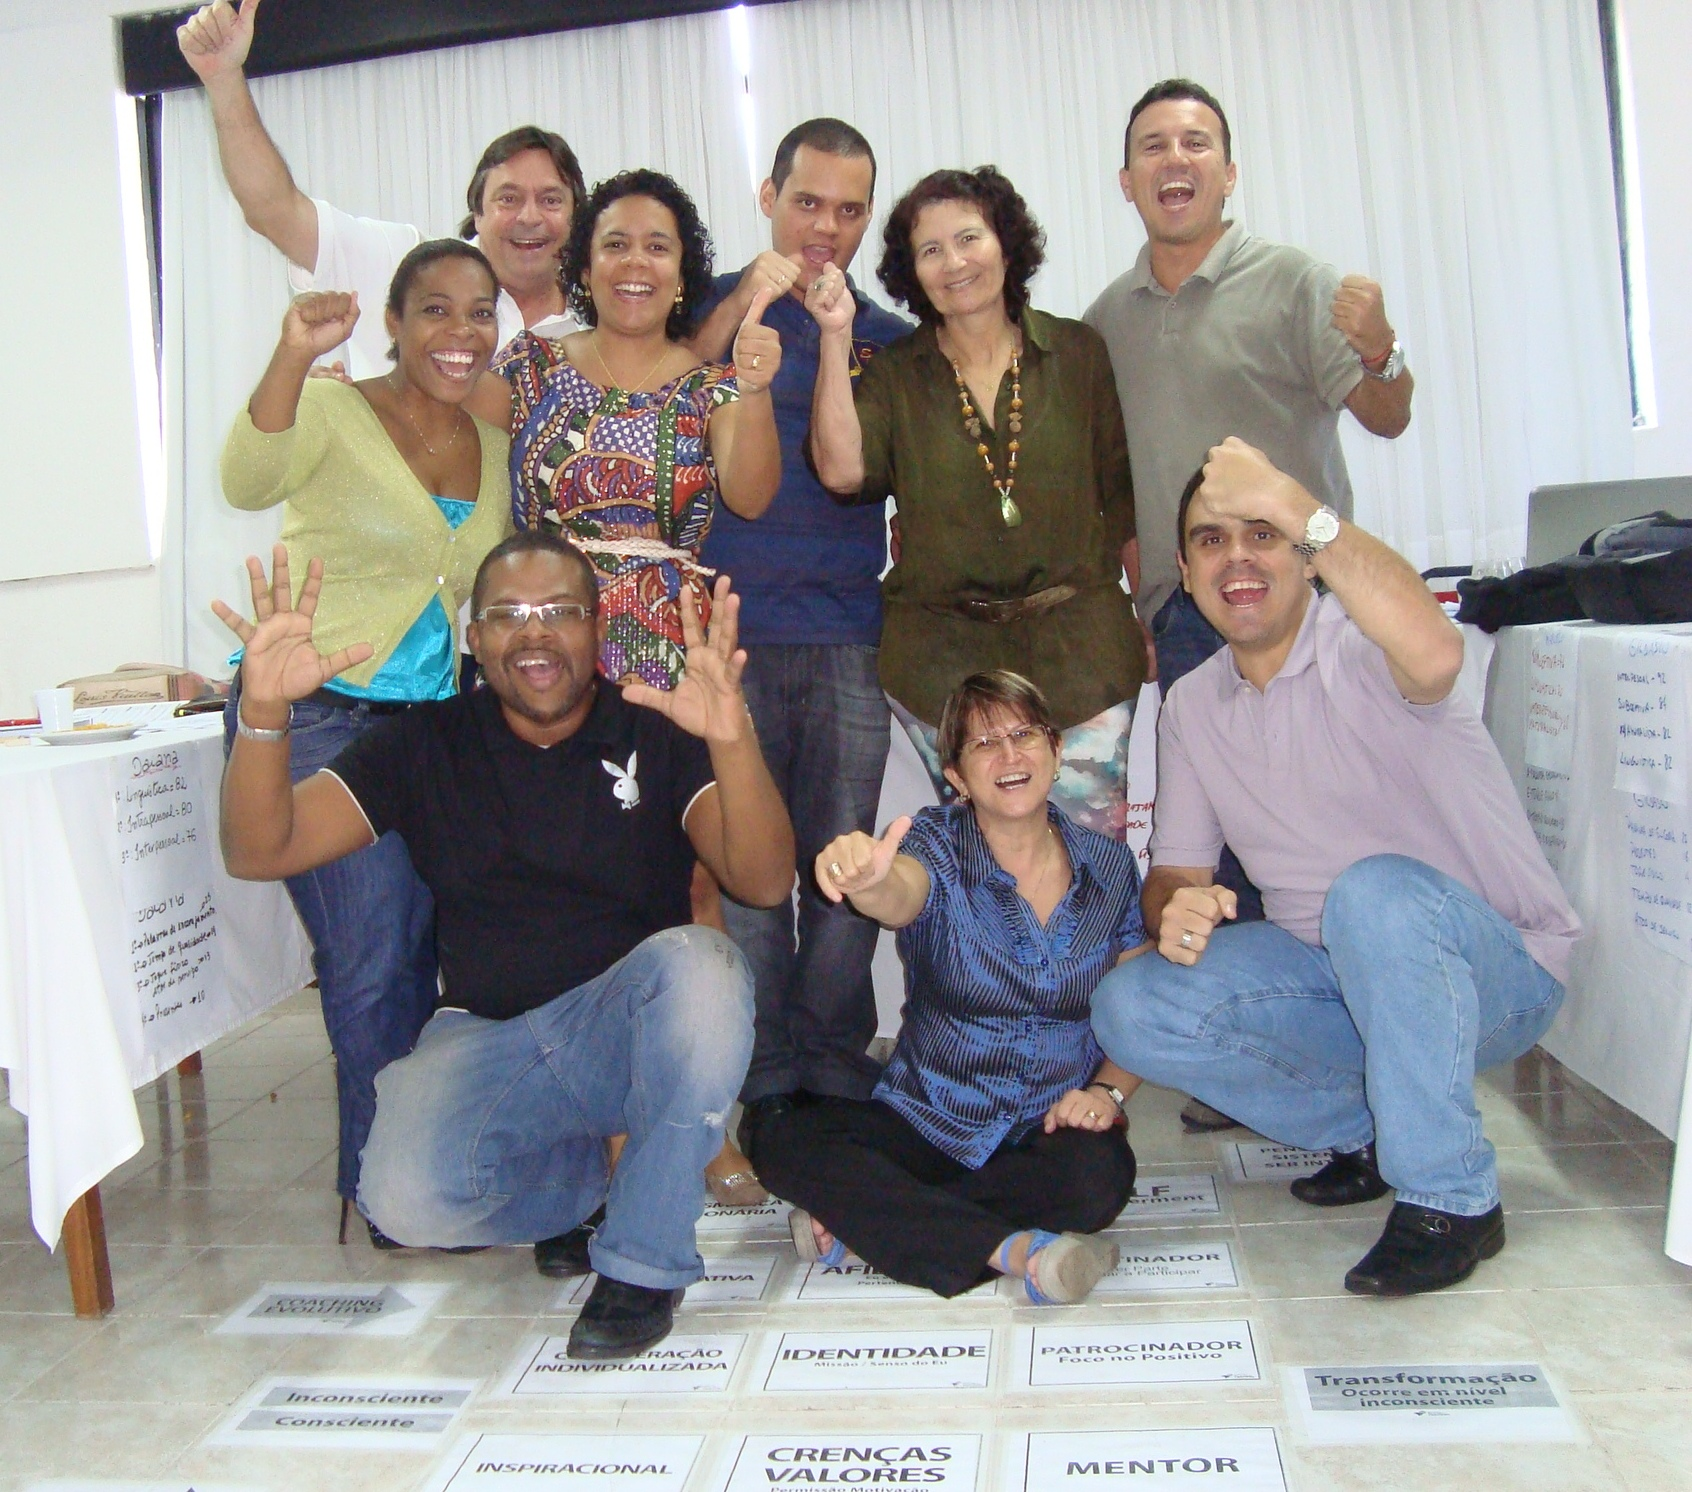 PROFESSIONAL AND SELF COACHING – PSC ABRIL / 2014 TURMA 13 SALVADOR / BA